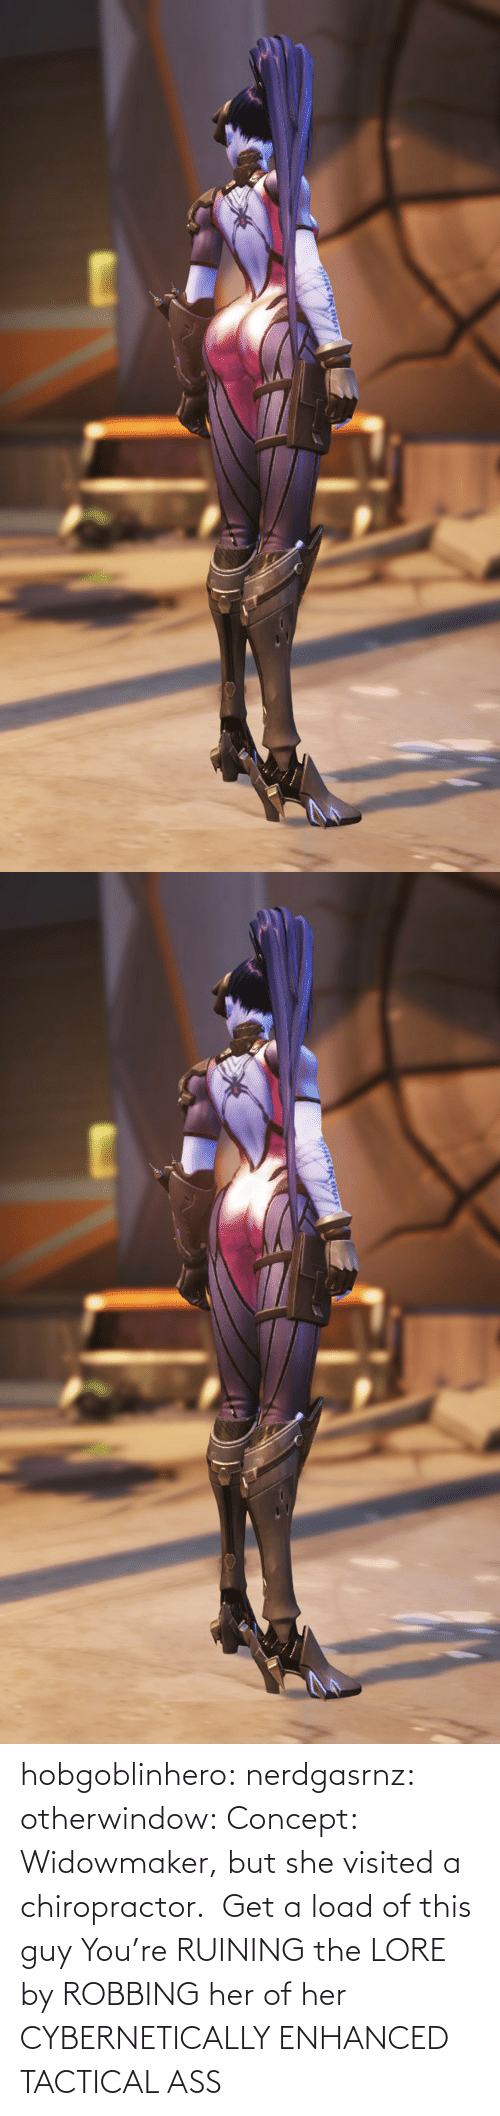 load: hobgoblinhero: nerdgasrnz:  otherwindow: Concept: Widowmaker, but she visited a chiropractor.  Get a load of this guy  You're RUINING the LORE by ROBBING her of her CYBERNETICALLY ENHANCED TACTICAL ASS